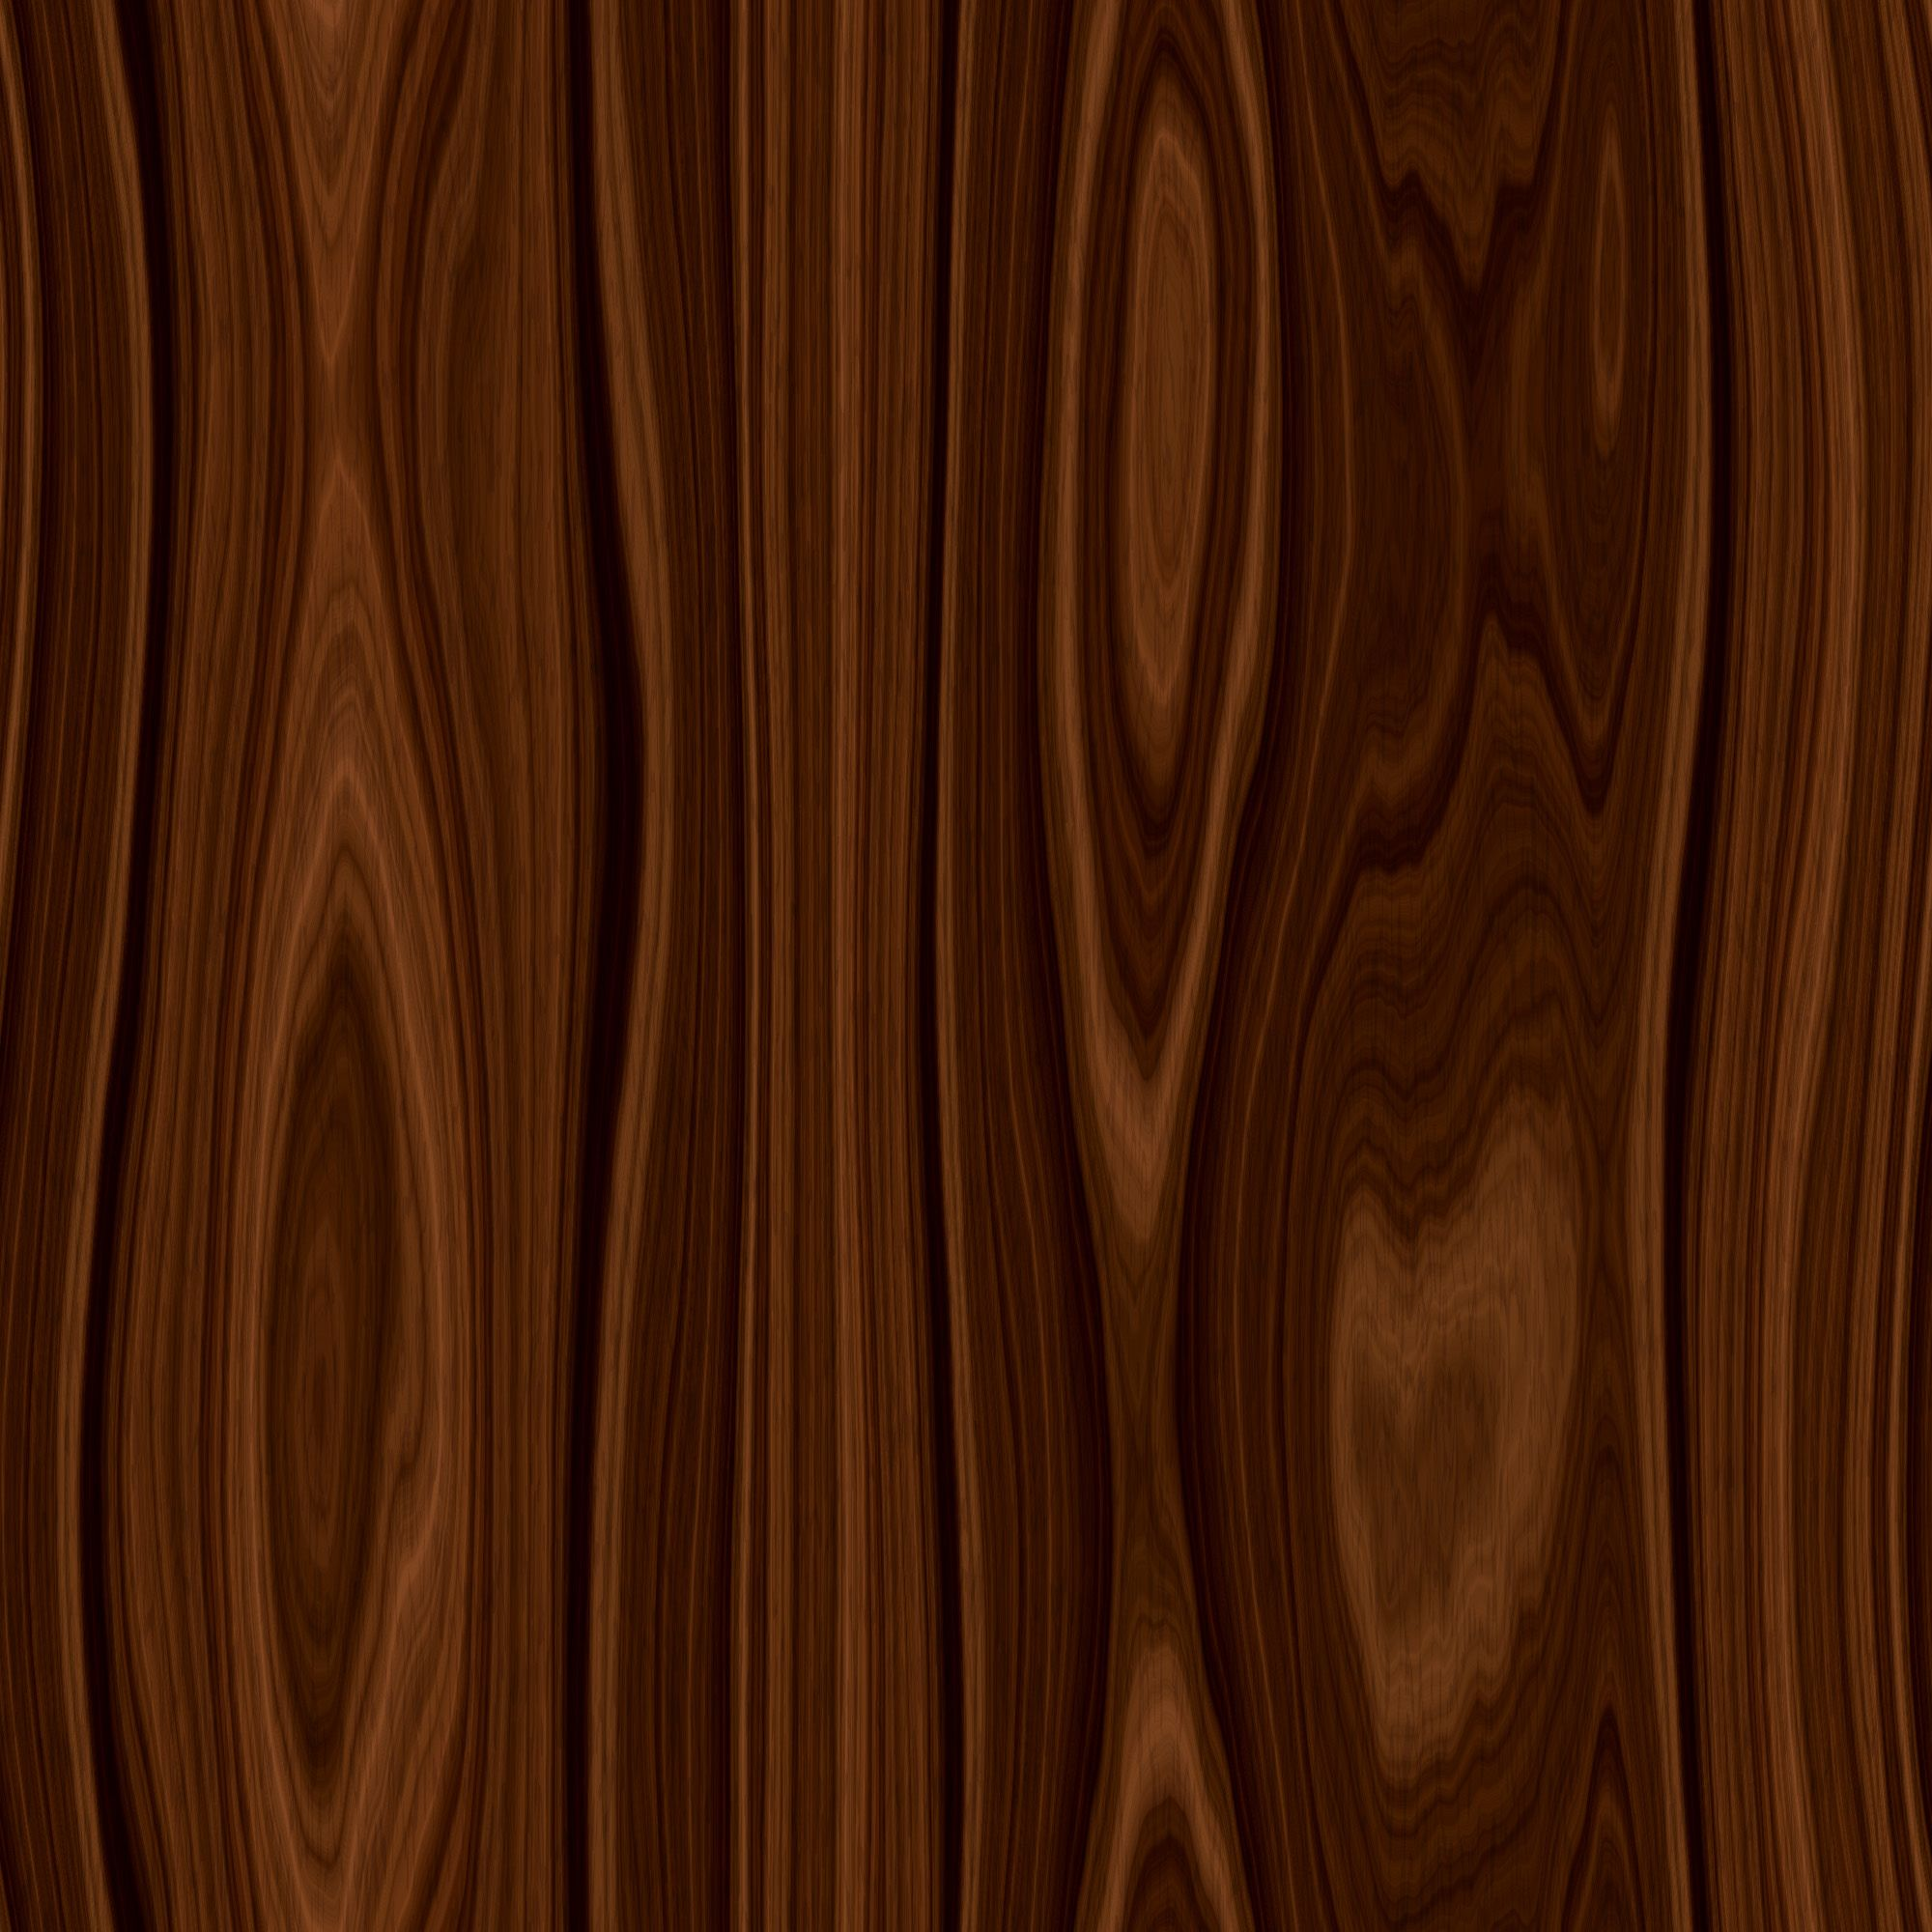 The second free seamless wood texture   wooden background texture seamless  wood number 4. dark seamless wood texture   http   www myfreetextures com dark